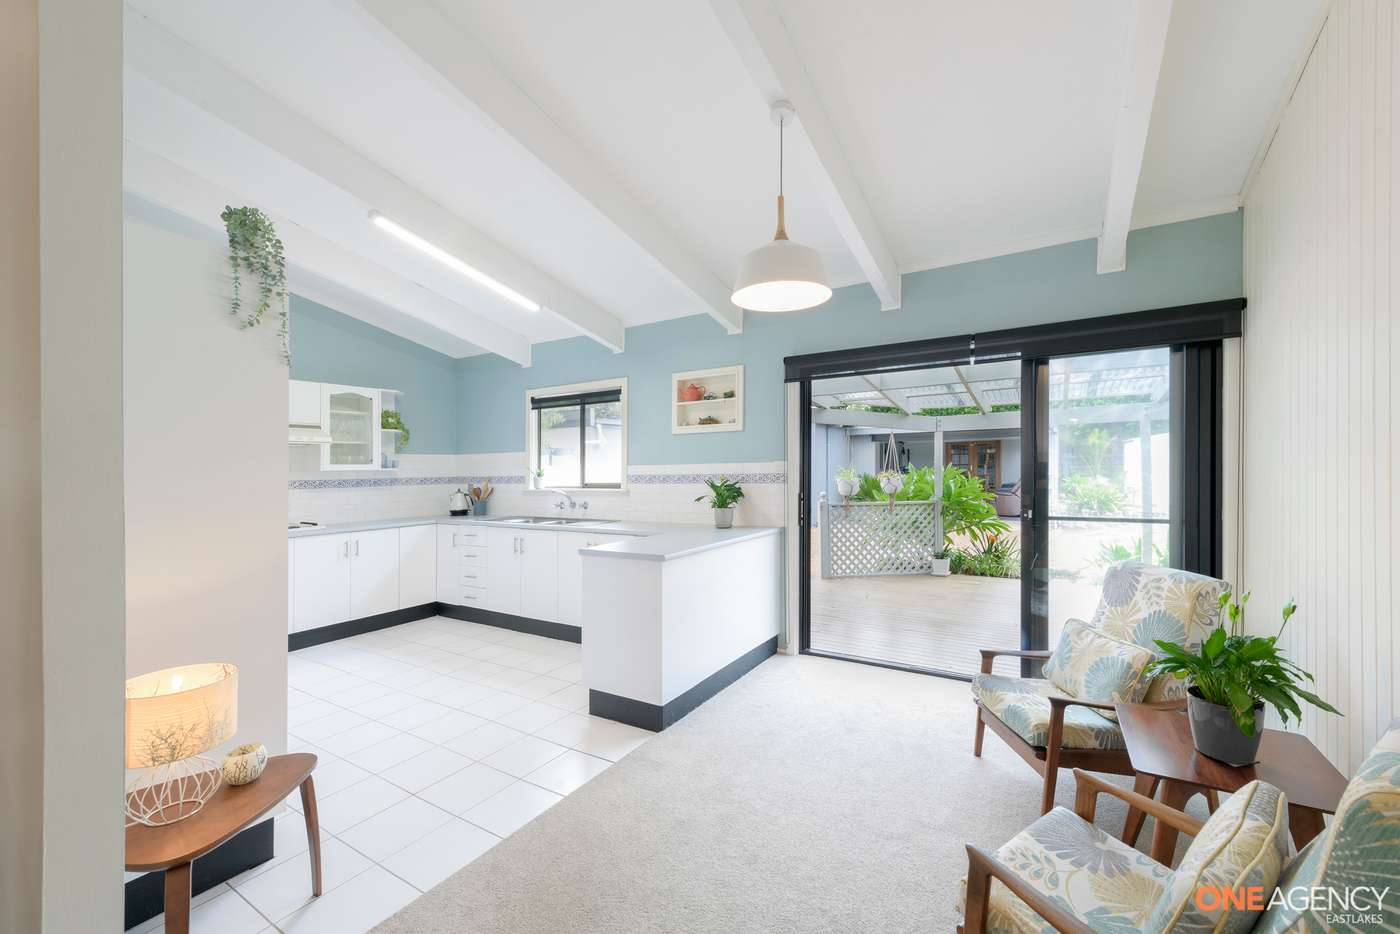 Sixth view of Homely house listing, 44 Northcote Avenue, Swansea Heads NSW 2281